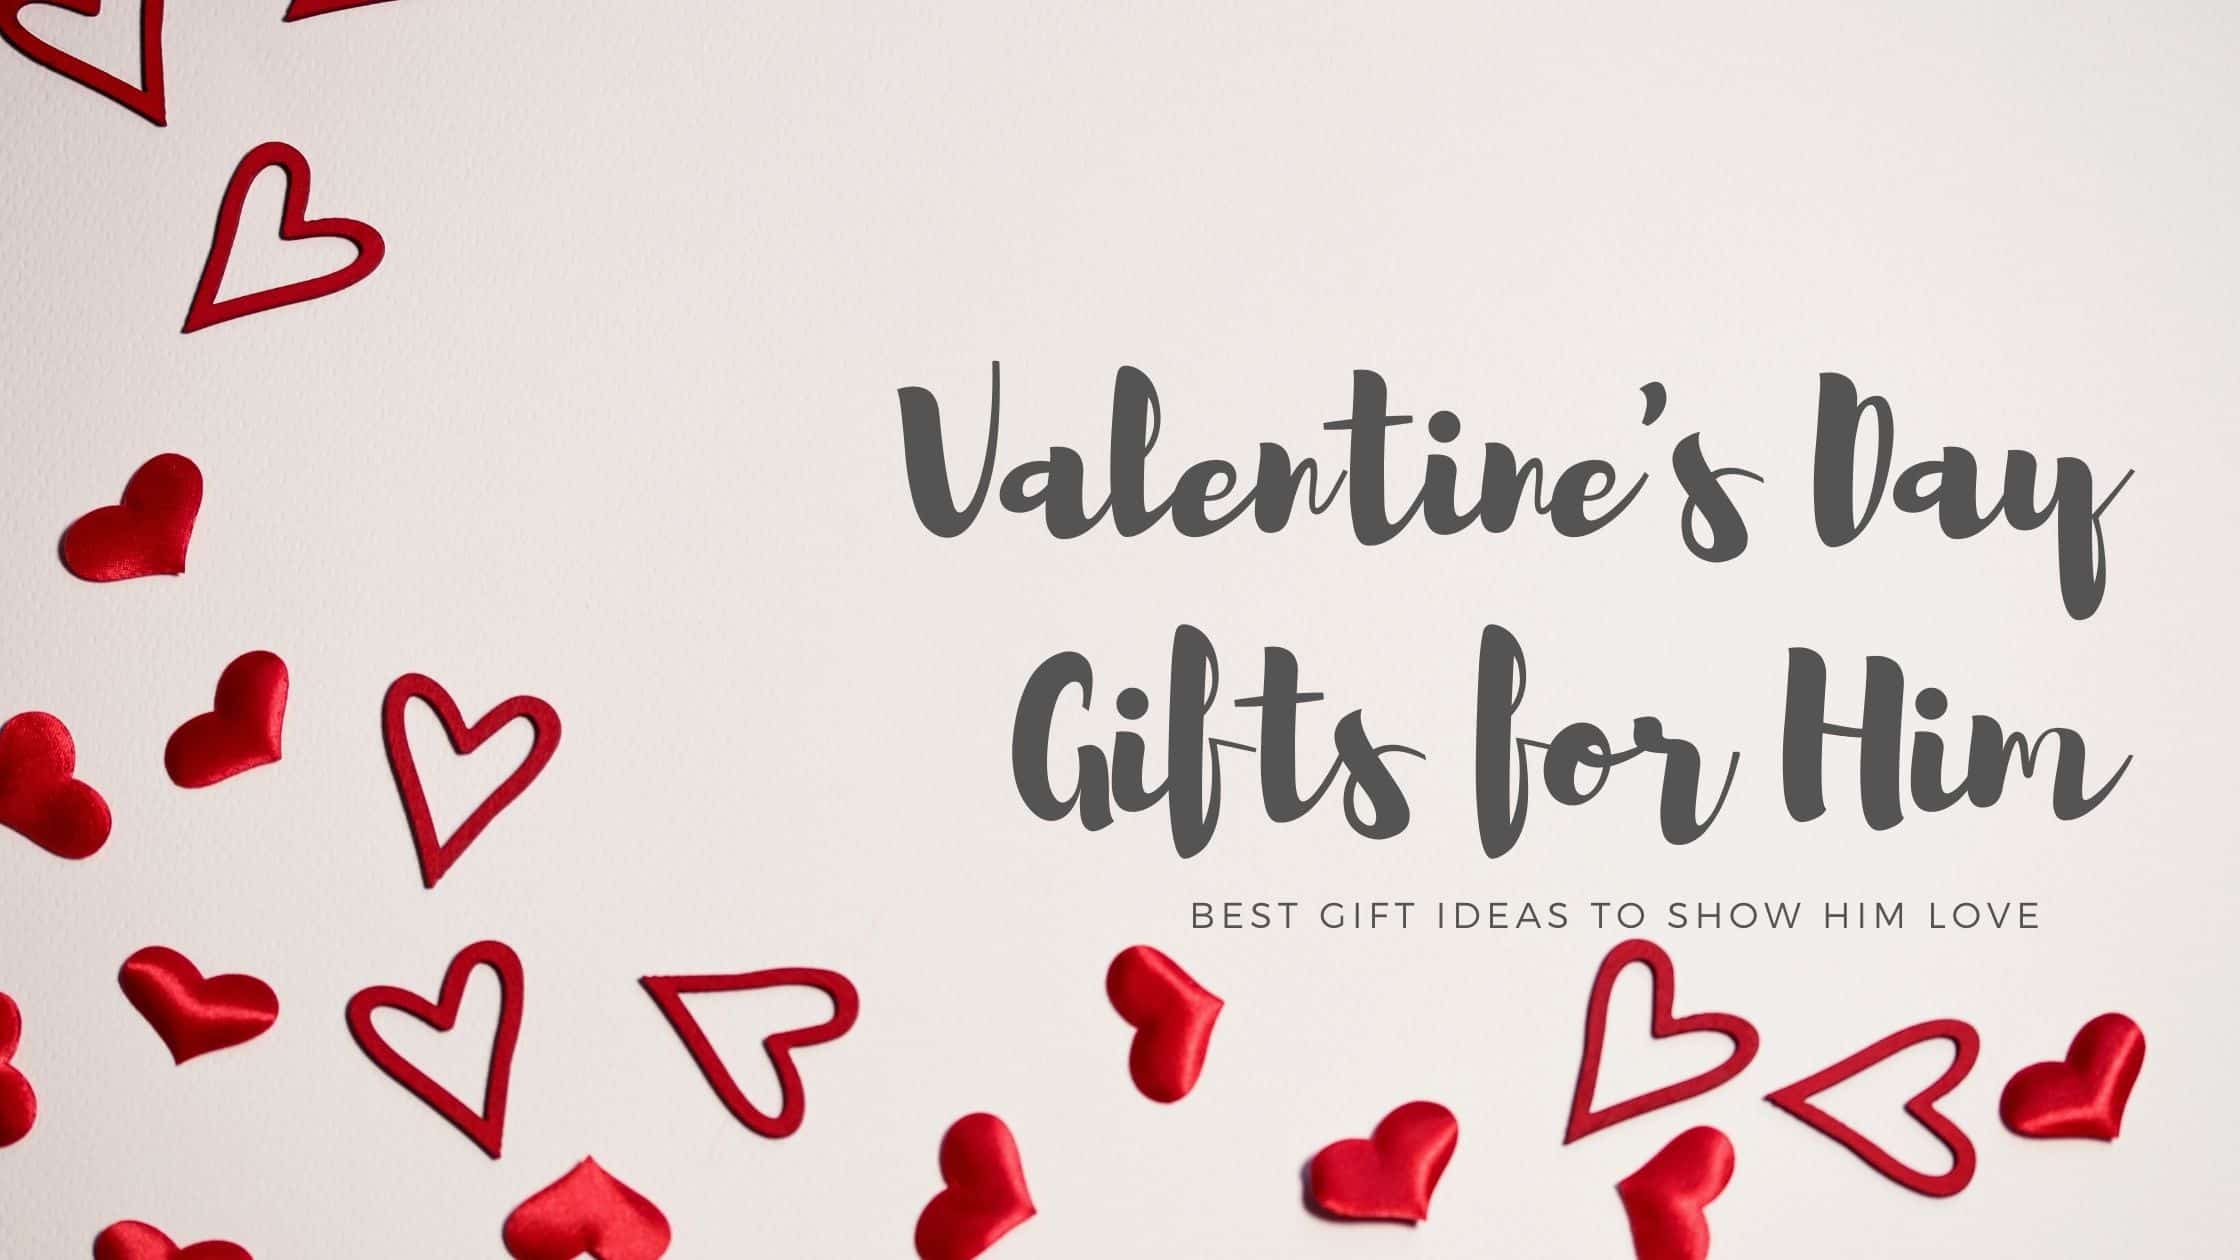 50+ Best Valentine's Day Gifts for Him in 2021